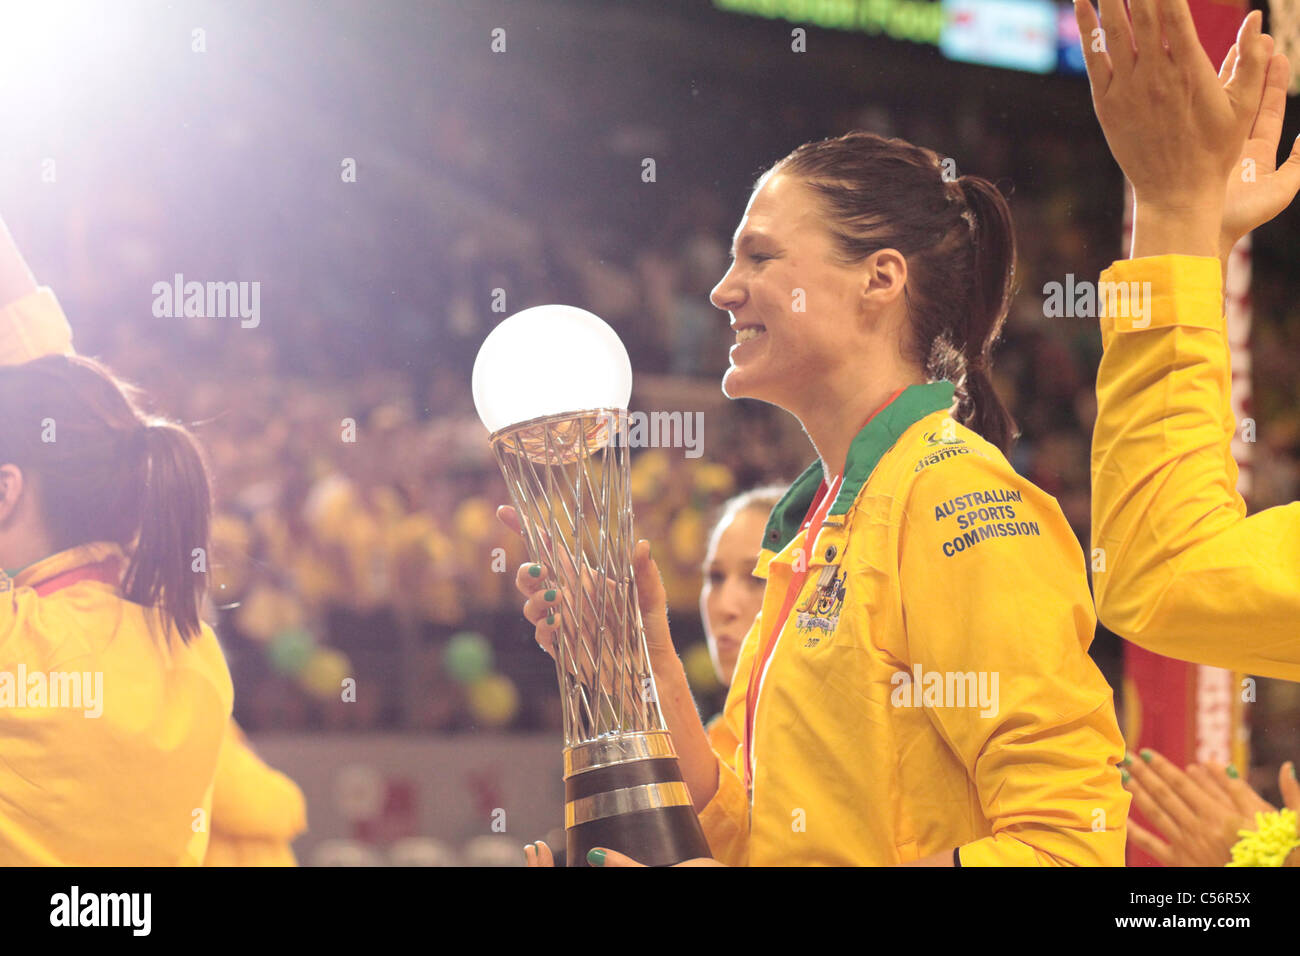 10.07.2011 Caitlin Bassett of Australia holds the World Netball Championships trophy, Mission Foods World Netball - Stock Image